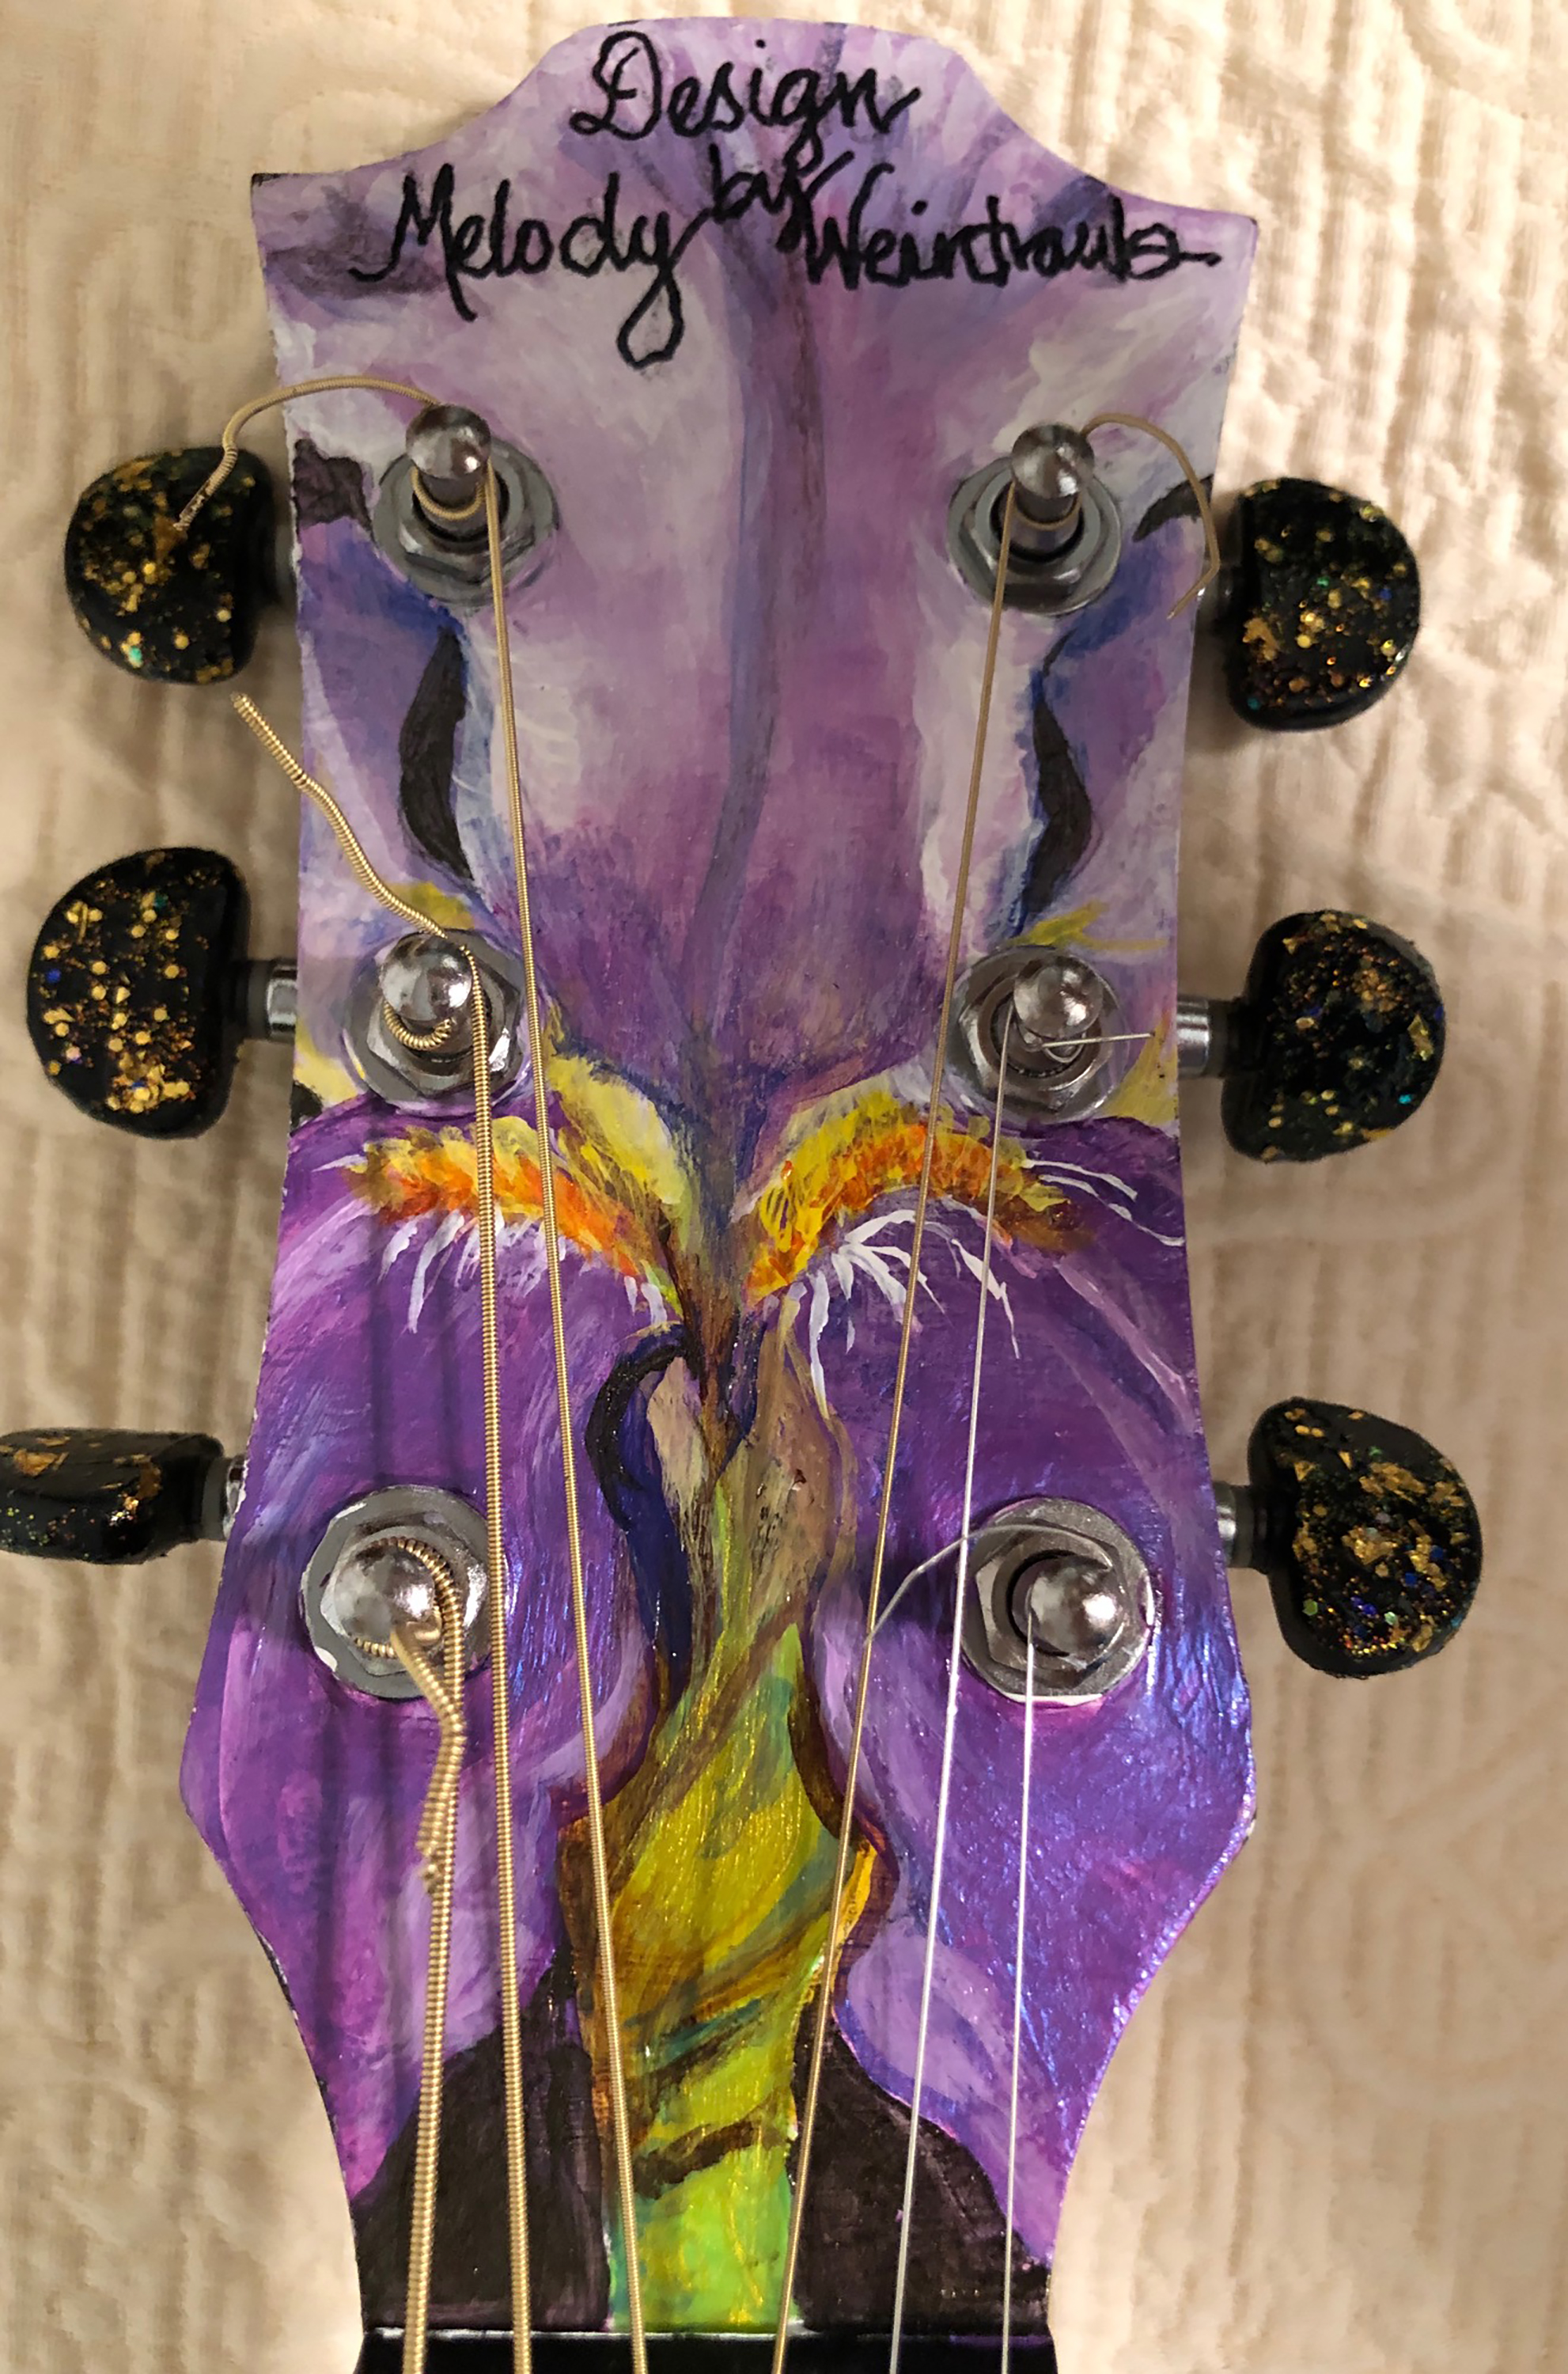 """Neck details for """"Tennessee Sounds,"""" by Melody Weintraub. DO NOT USE WITHOUT PERMISSION."""